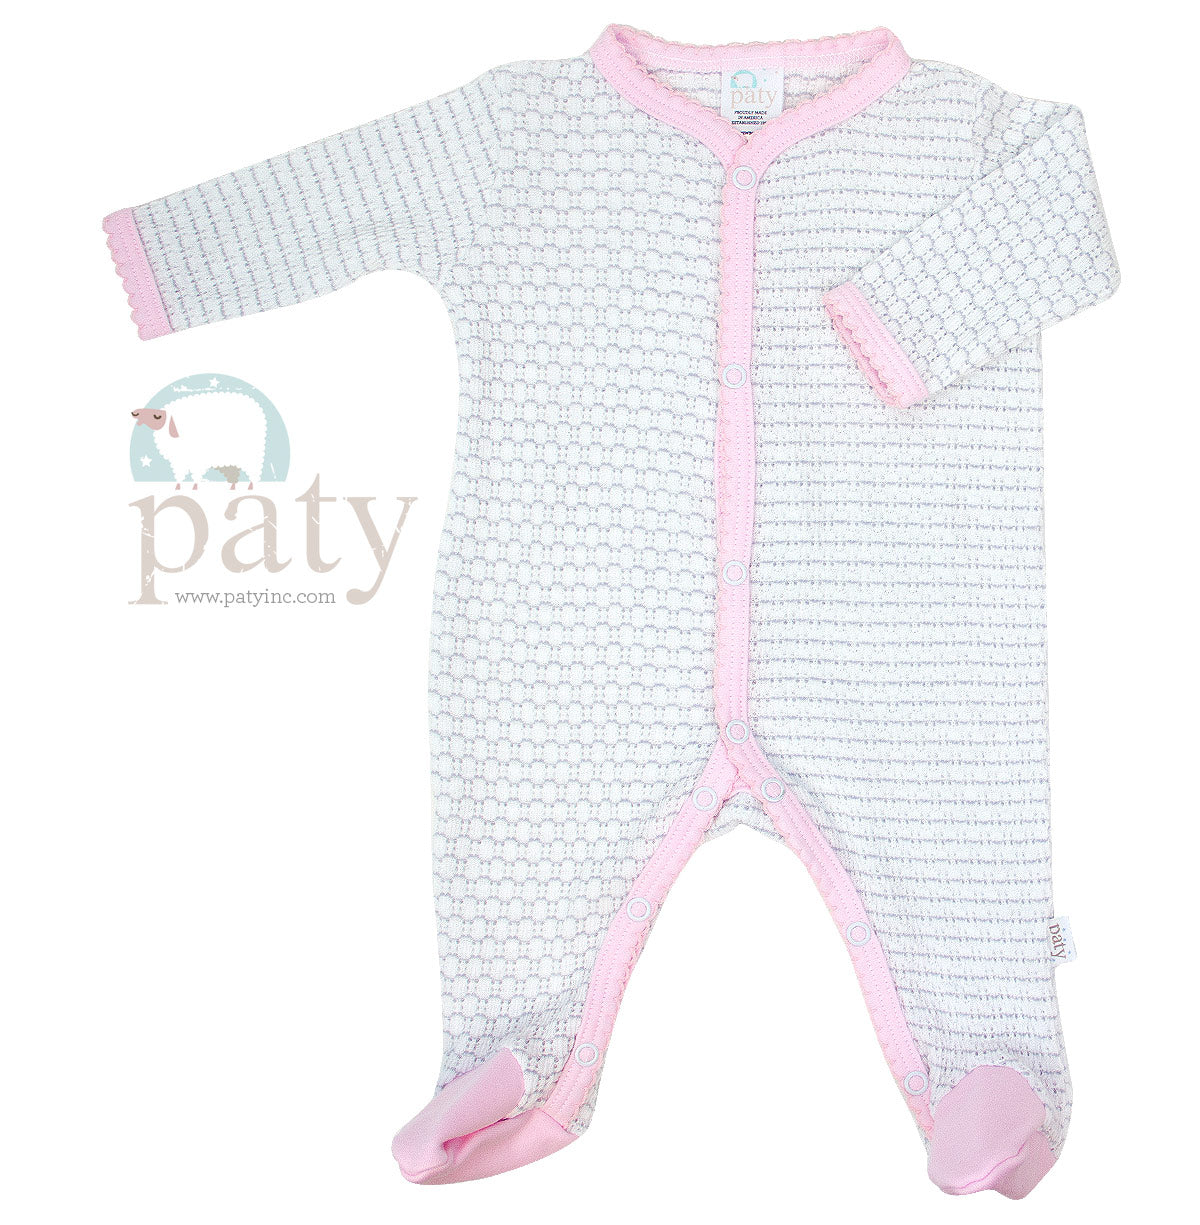 Pinstripe Footie Knit - Pink and Grey